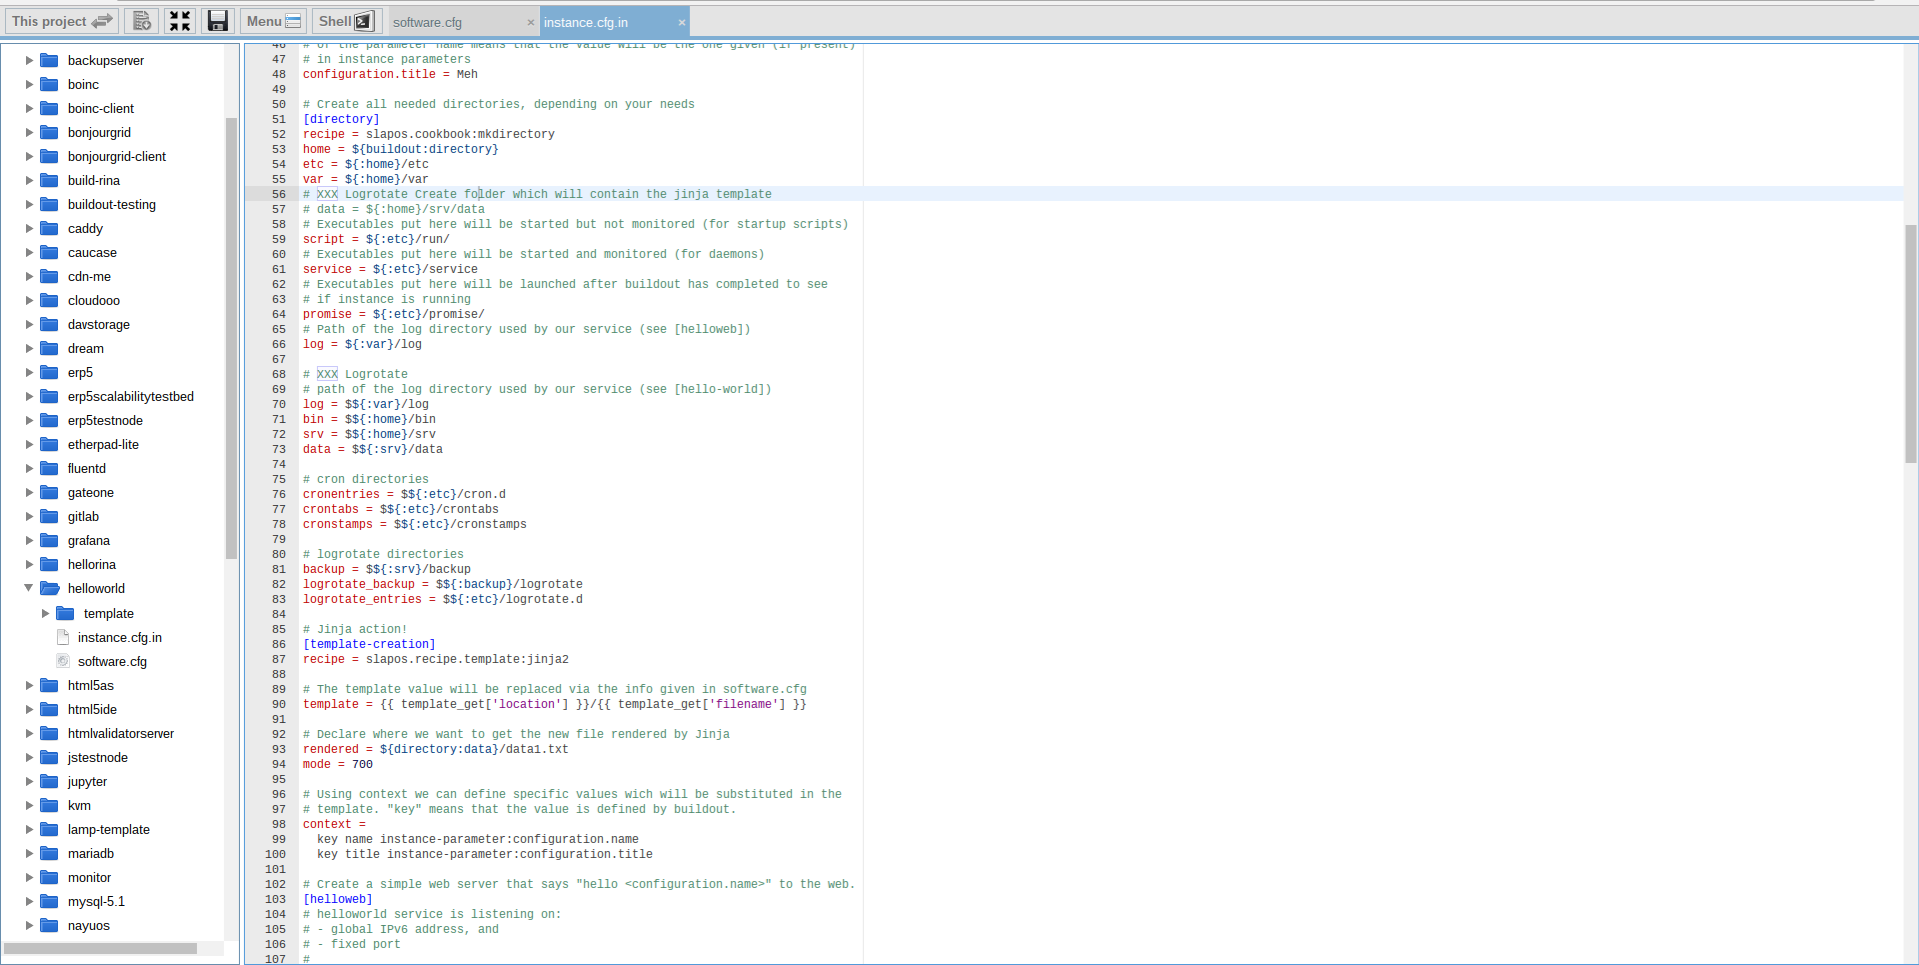 Extending Software Release - Webrunner Interface - Add Logrotate to Instance Profile